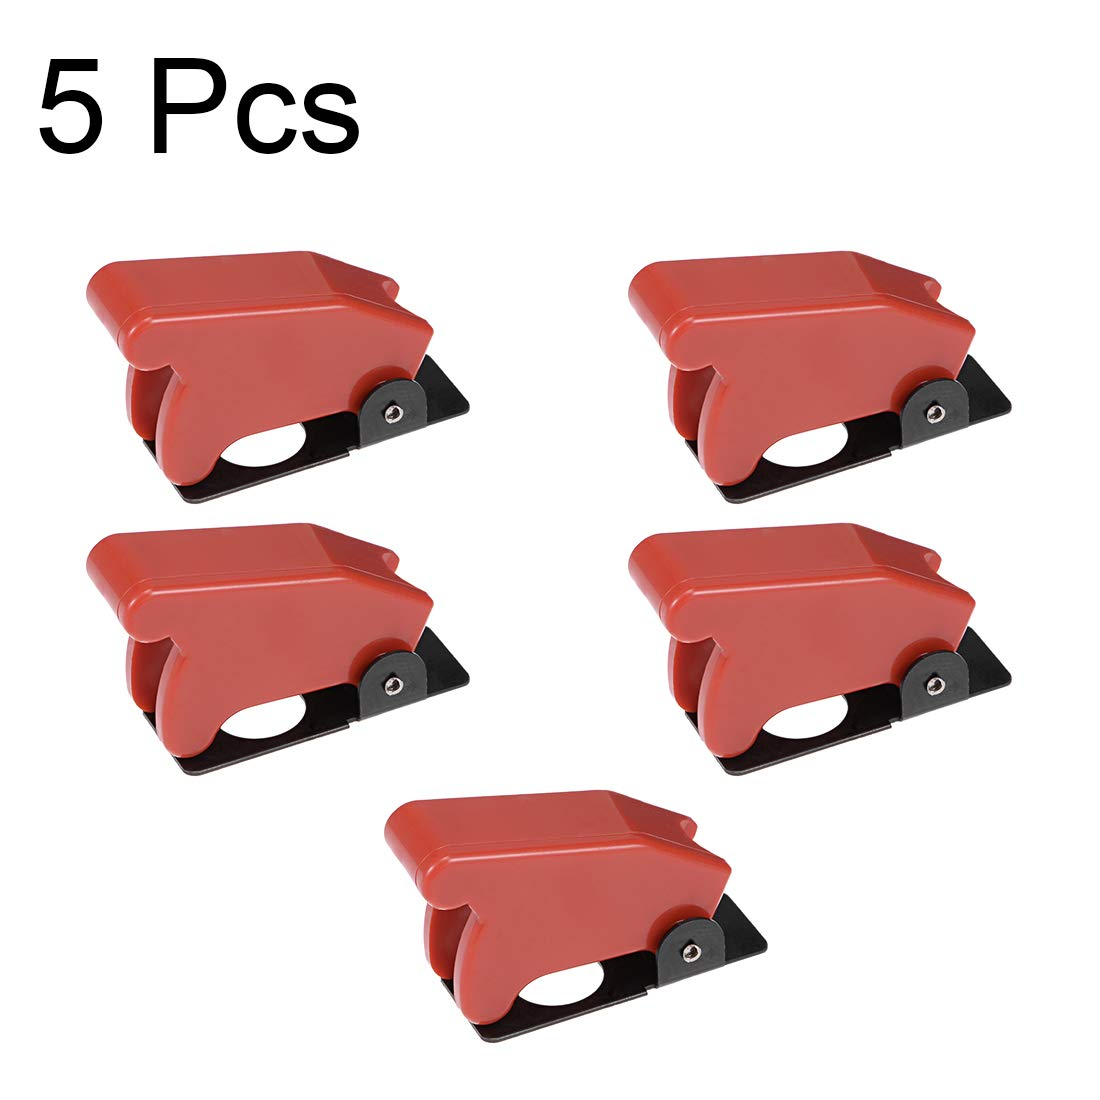 uxcell Red Plastic Waterproof Spring Loaded Flip Security Cover Cap Guard for 12mm Toggle Switch 5pcs